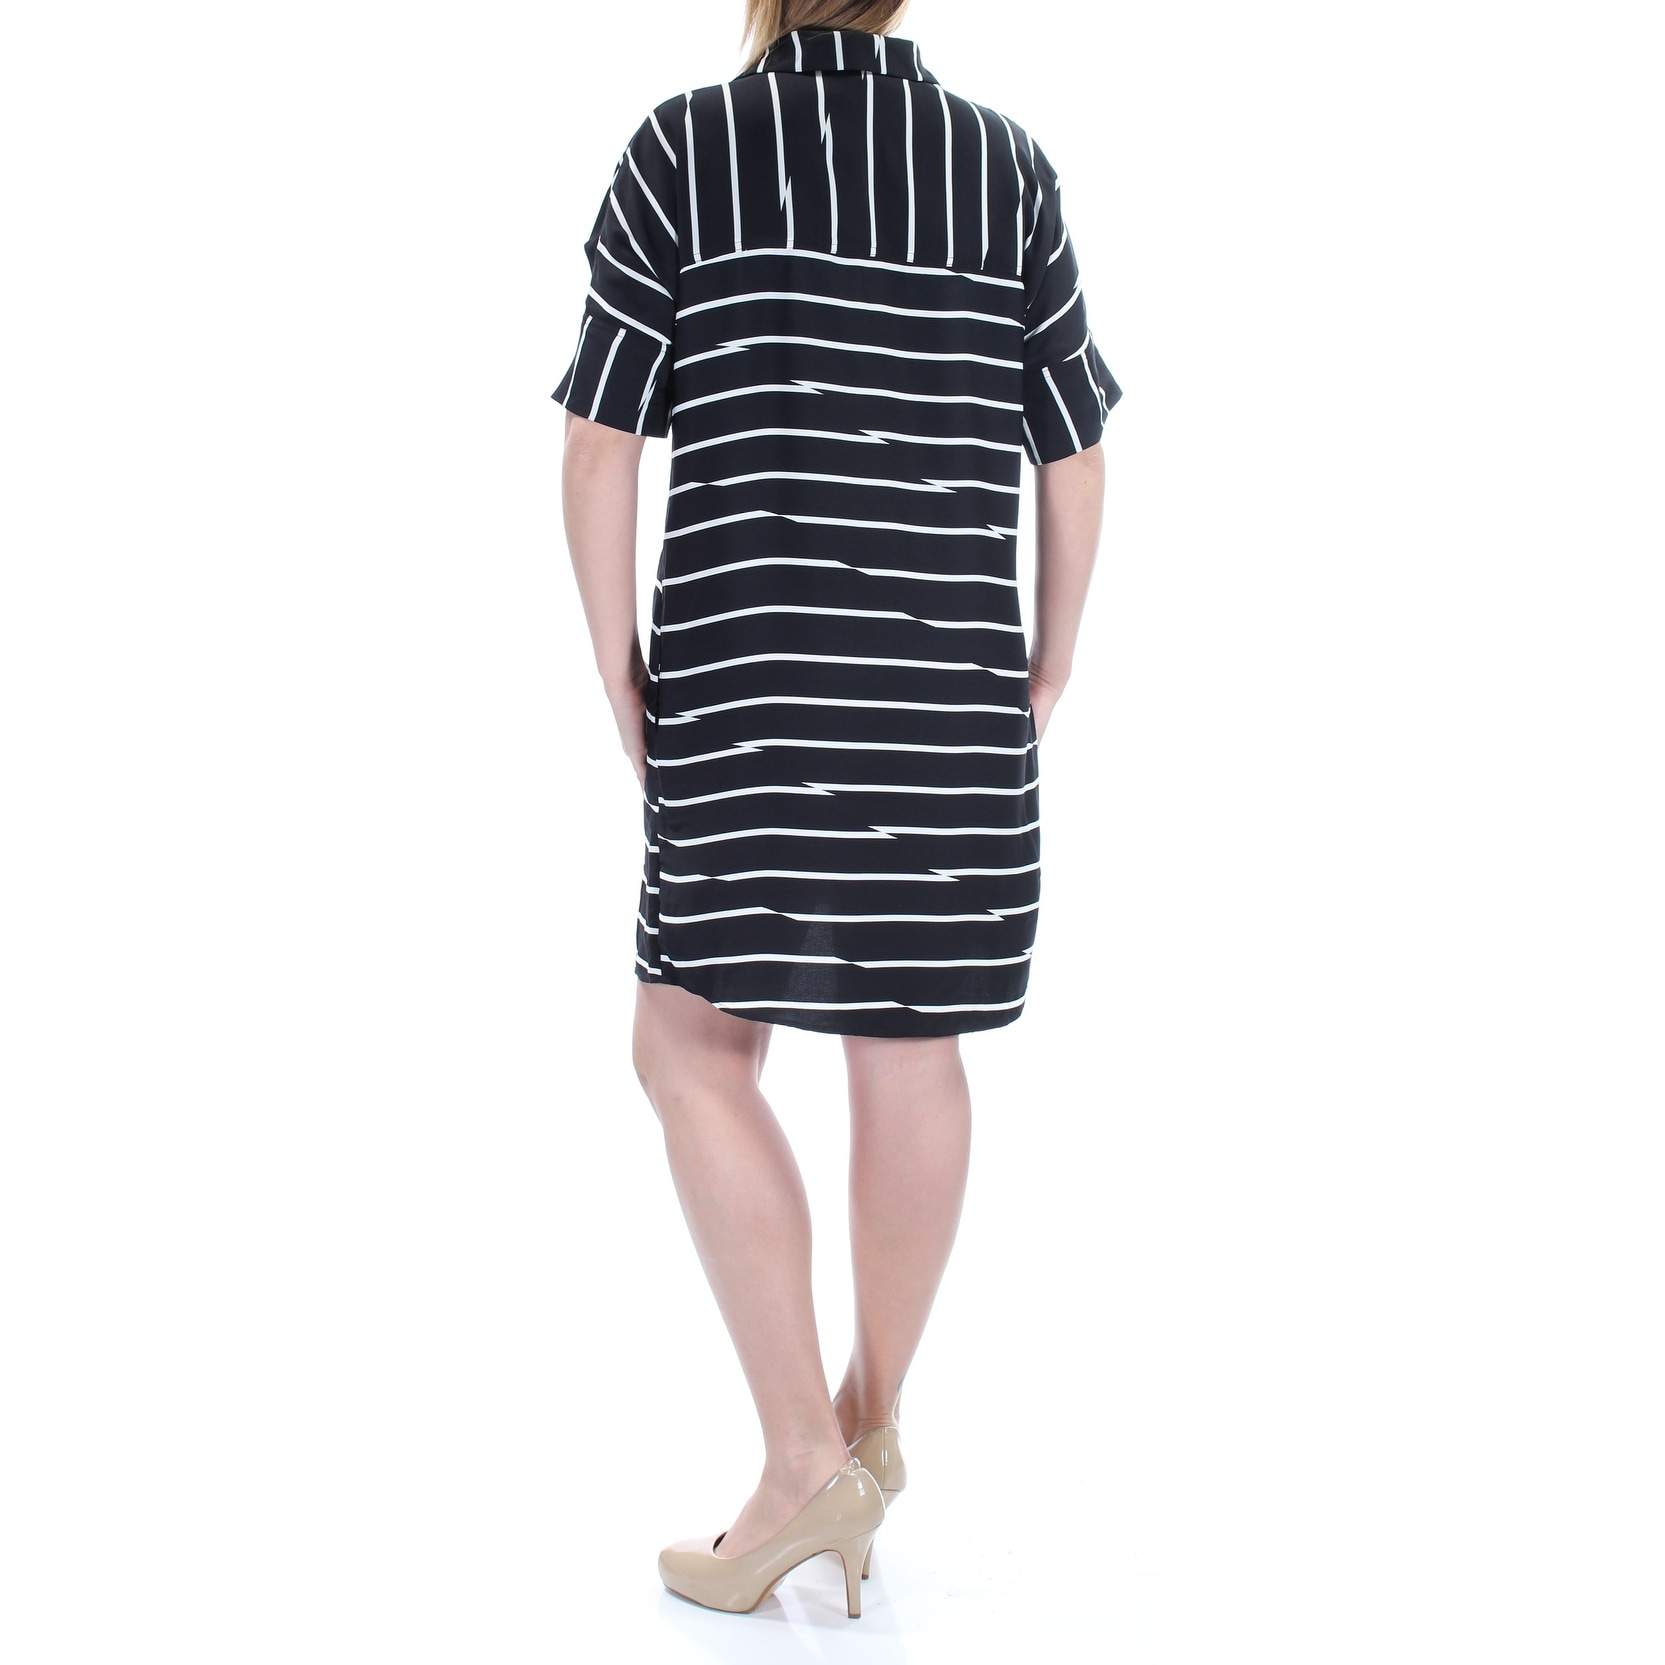 Shop Womens Black White Striped Short Sleeve Mini Shirt Dress Size